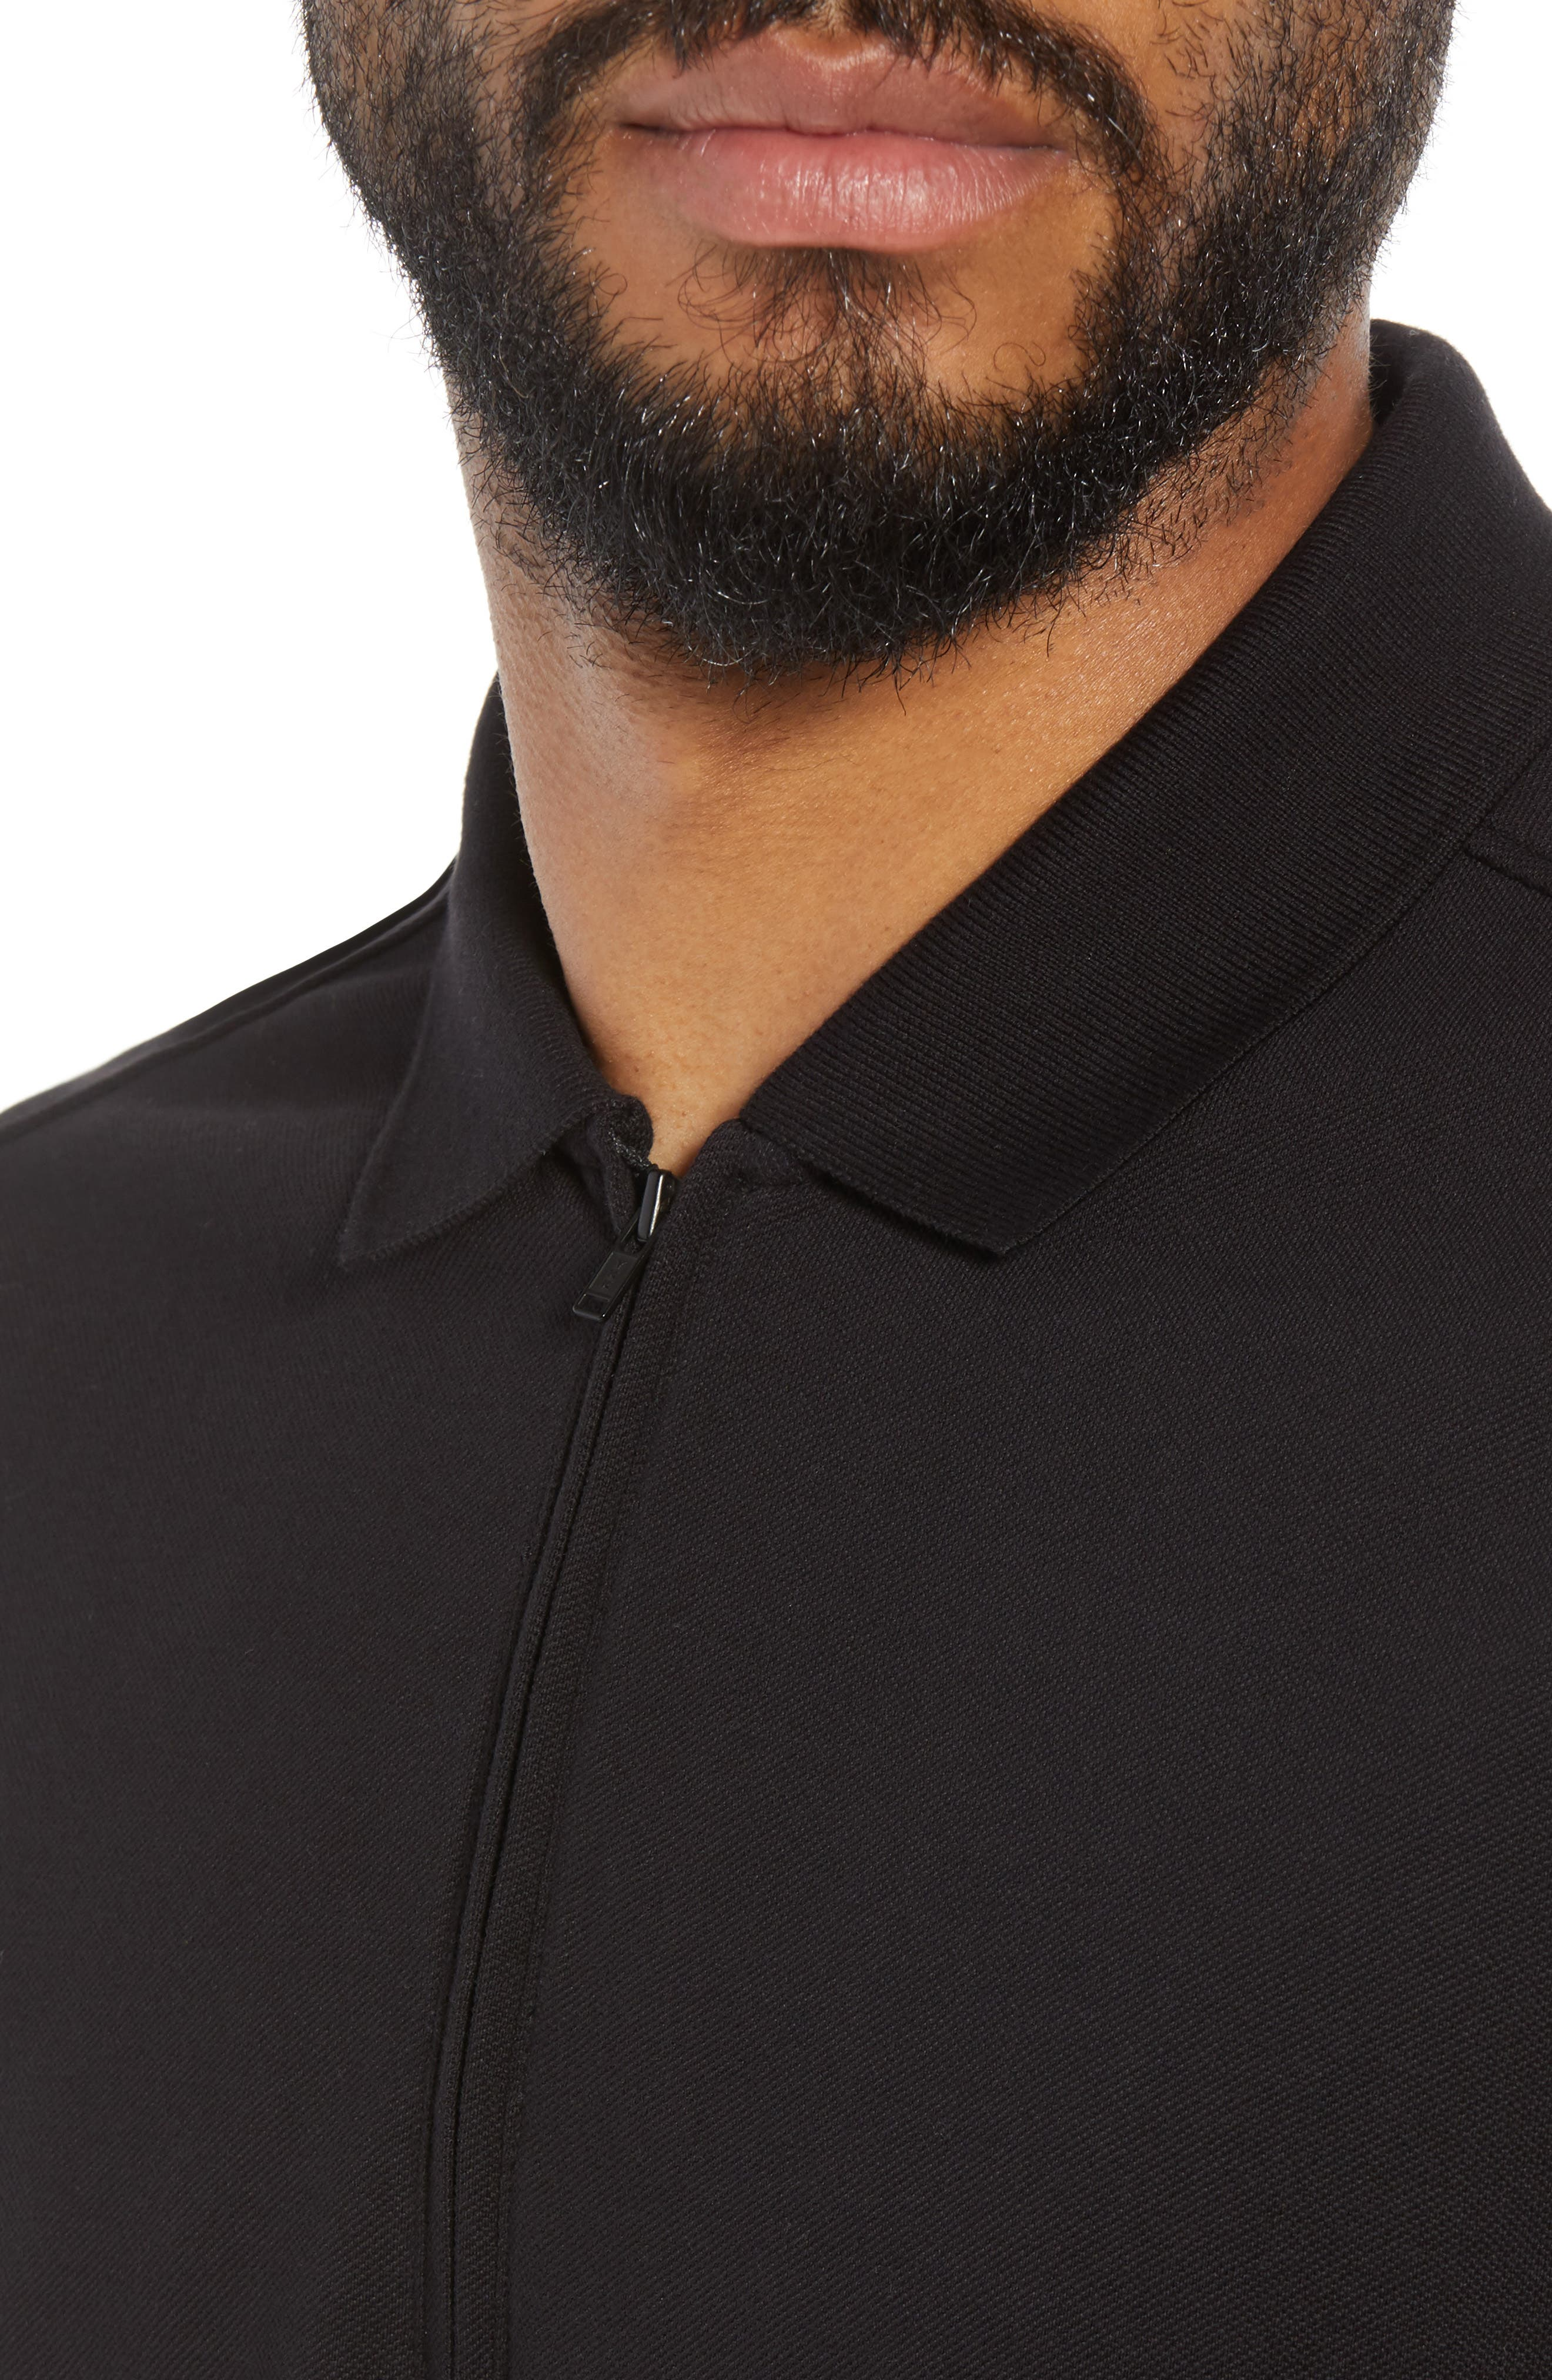 Trim Fit Zip Polo,                             Alternate thumbnail 4, color,                             001